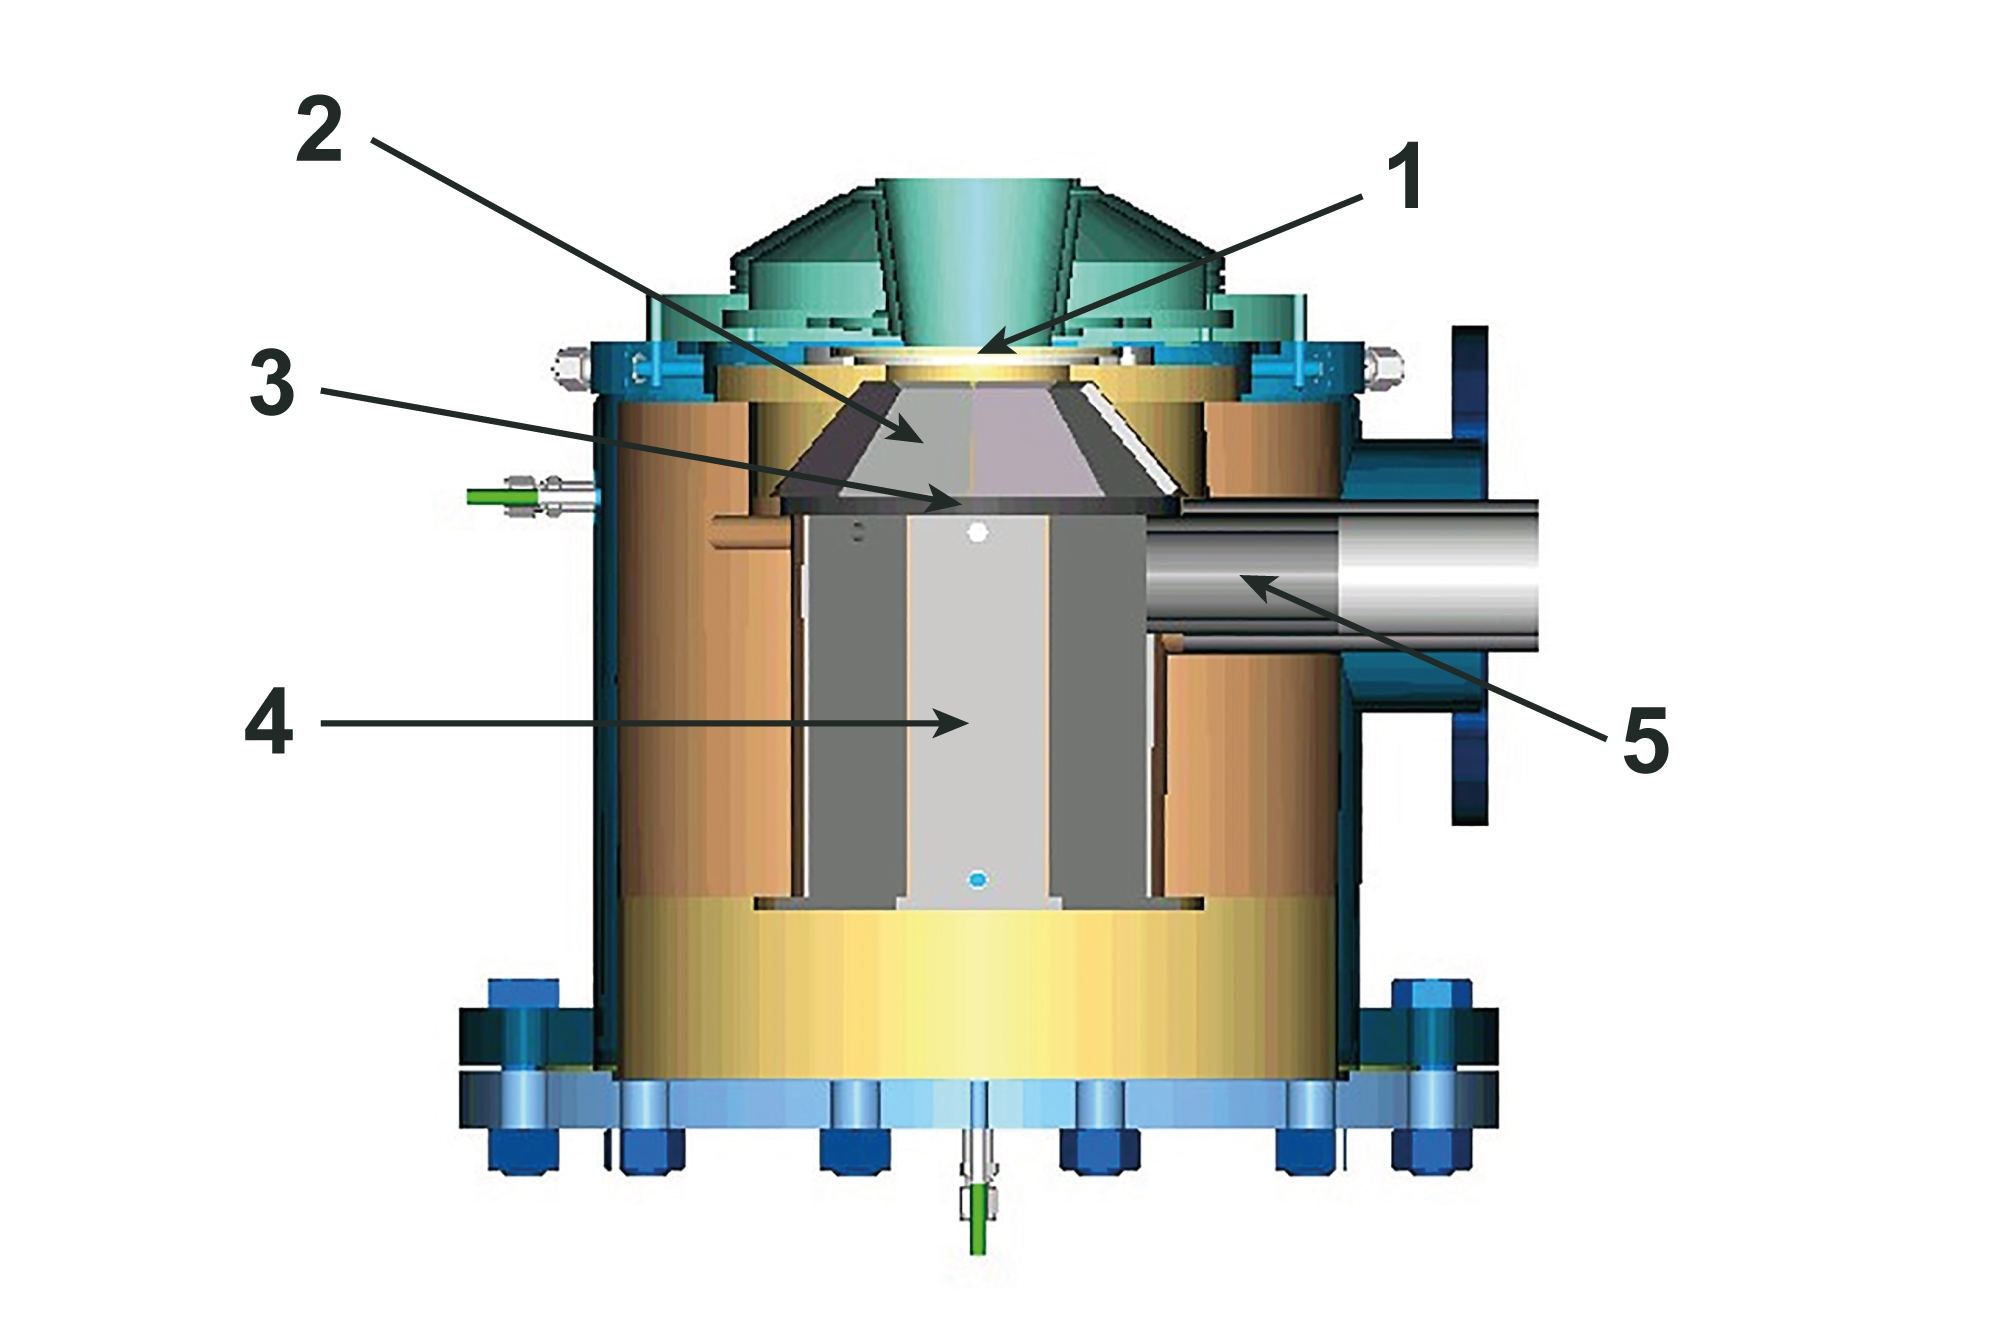 The solar reactor used by the researchers has two chambers. The concentrated radiation enters the upper chamber (1) via the entry window (made of quartz)(2) and heats the partition between the chambers. The heated separation wall (3) then radiates the majority of the energy absorbed into the lower chamber (reaction chamber)(4), where the actual chemical reactions take place. This separation makes sure that evaporated gas or rogue particles in the reaction chamber leave the reactor through the exhaust pipe (5) instead of reaching the quartz window and accumulating on it as solid residues, which would absorb the incident radiation, overheat the entry window and potentially damage it. The problem of window contamination is one of the biggest technical hurdles in upgrading this kind of solar reactor to an industrial scale. Source:Paul Scherrer Institute.